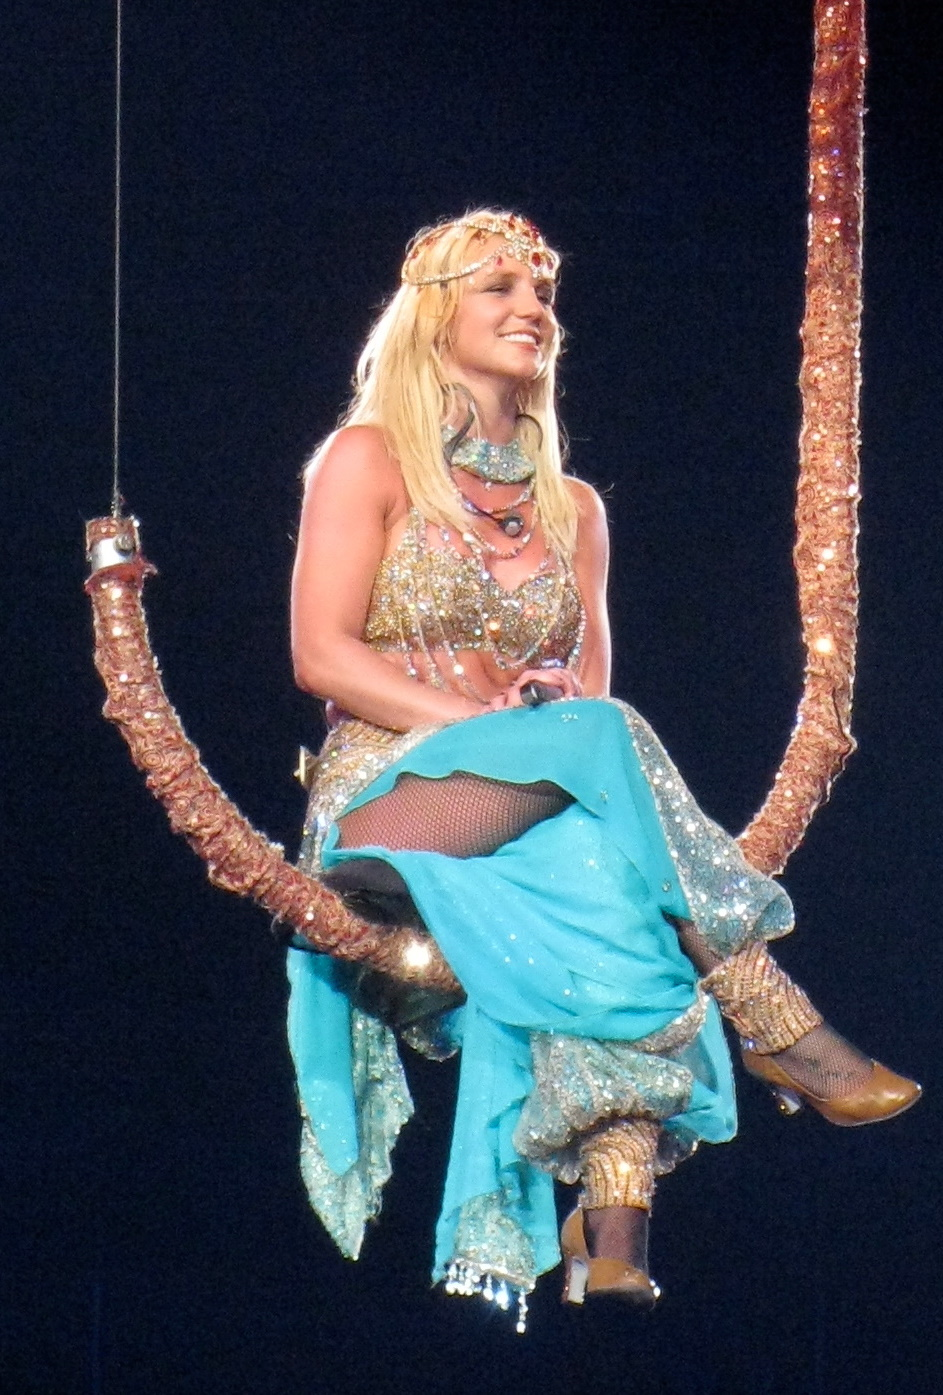 Britney Spears performing in Montreal, 2009